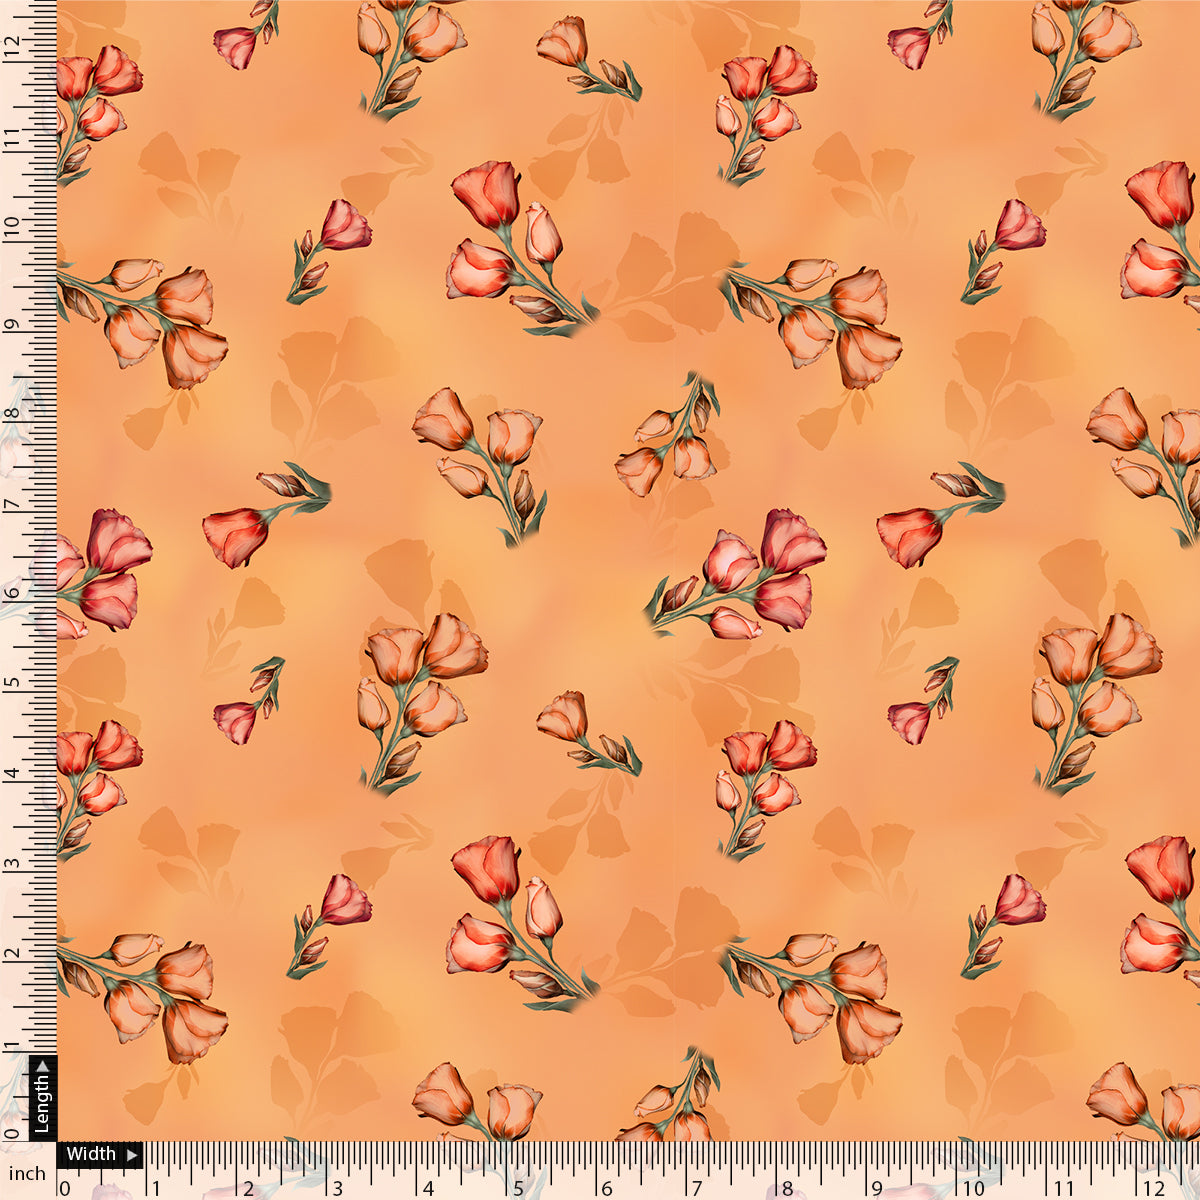 Lovely Decorative Roses Digital Printed Fabric